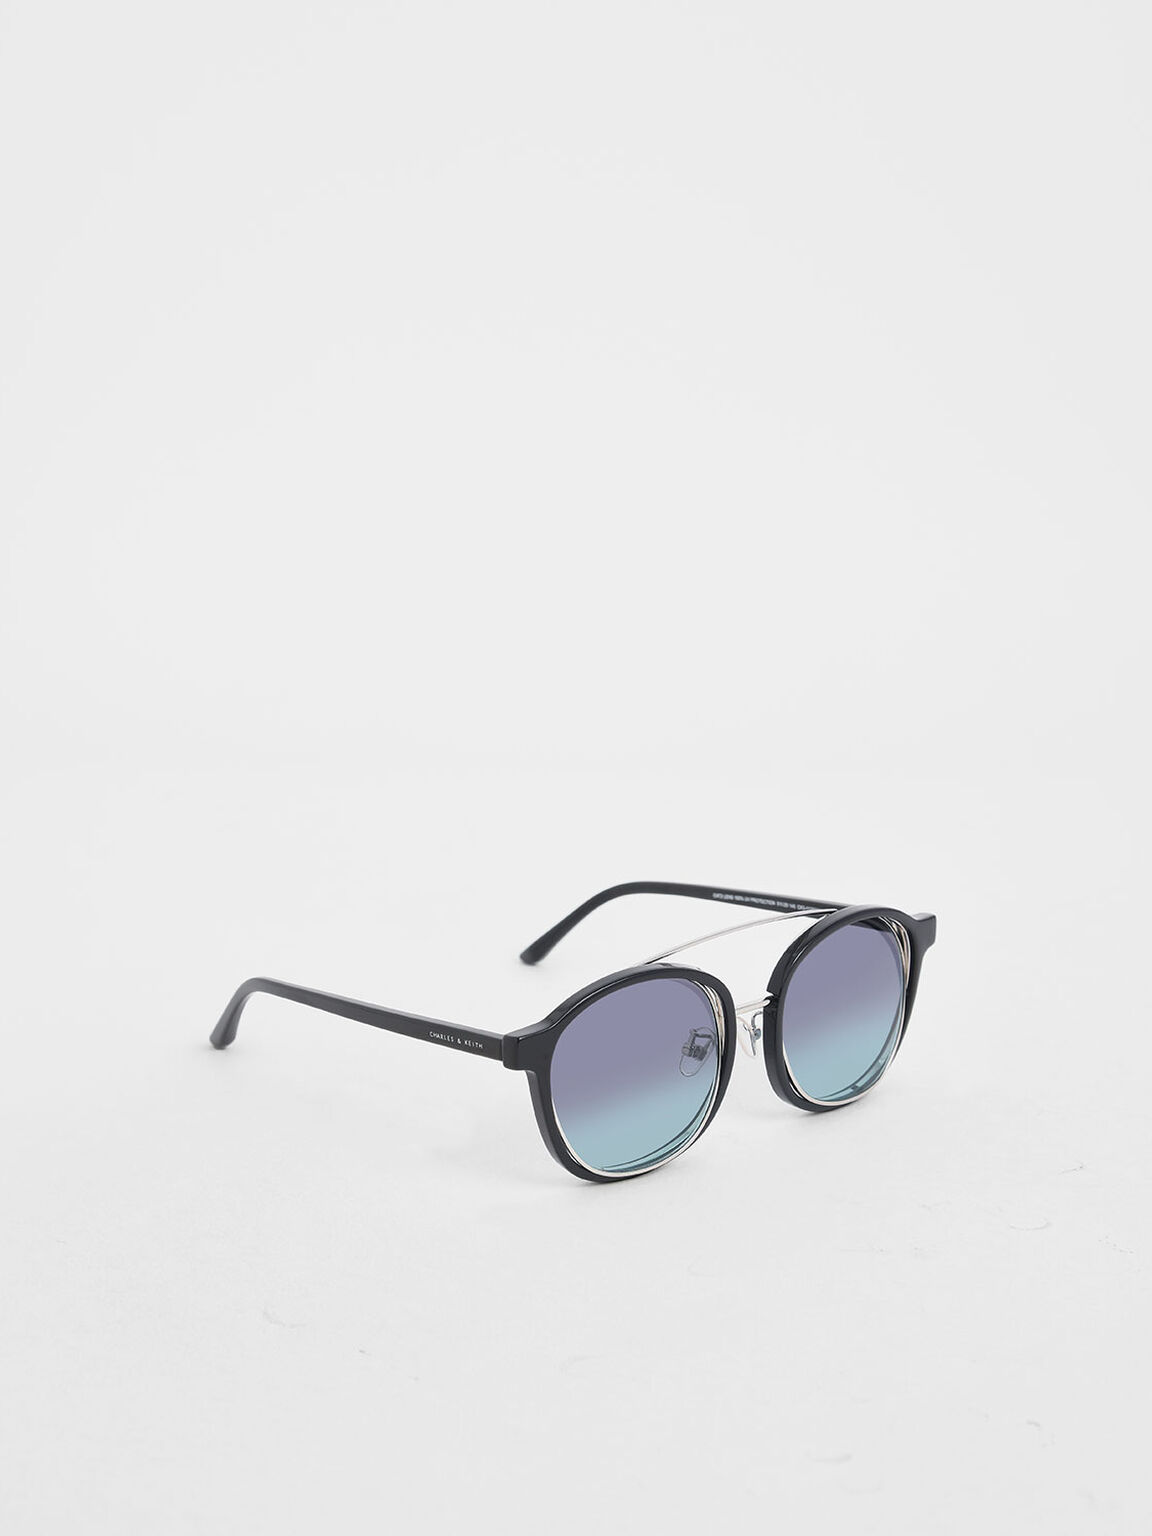 Gradient Tint Round Sunglasses, Black, hi-res